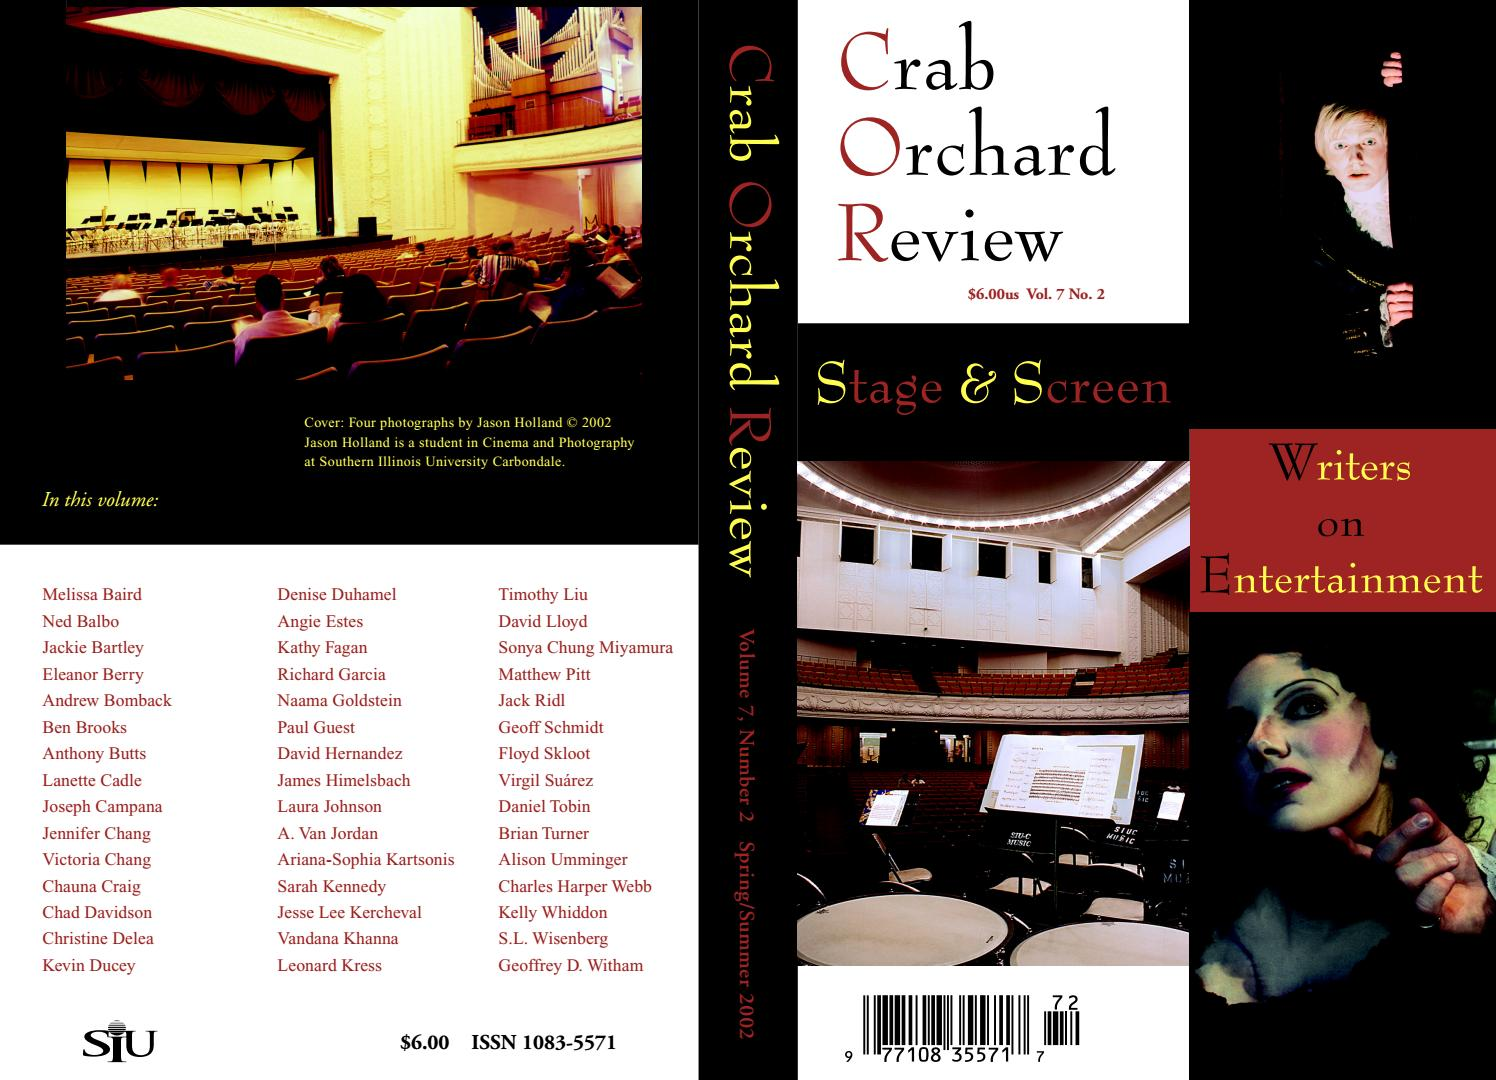 4b31f016e32 Crab Orchard Review Vol 7 No 2 S/S 2002 by Crab Orchard Review - issuu